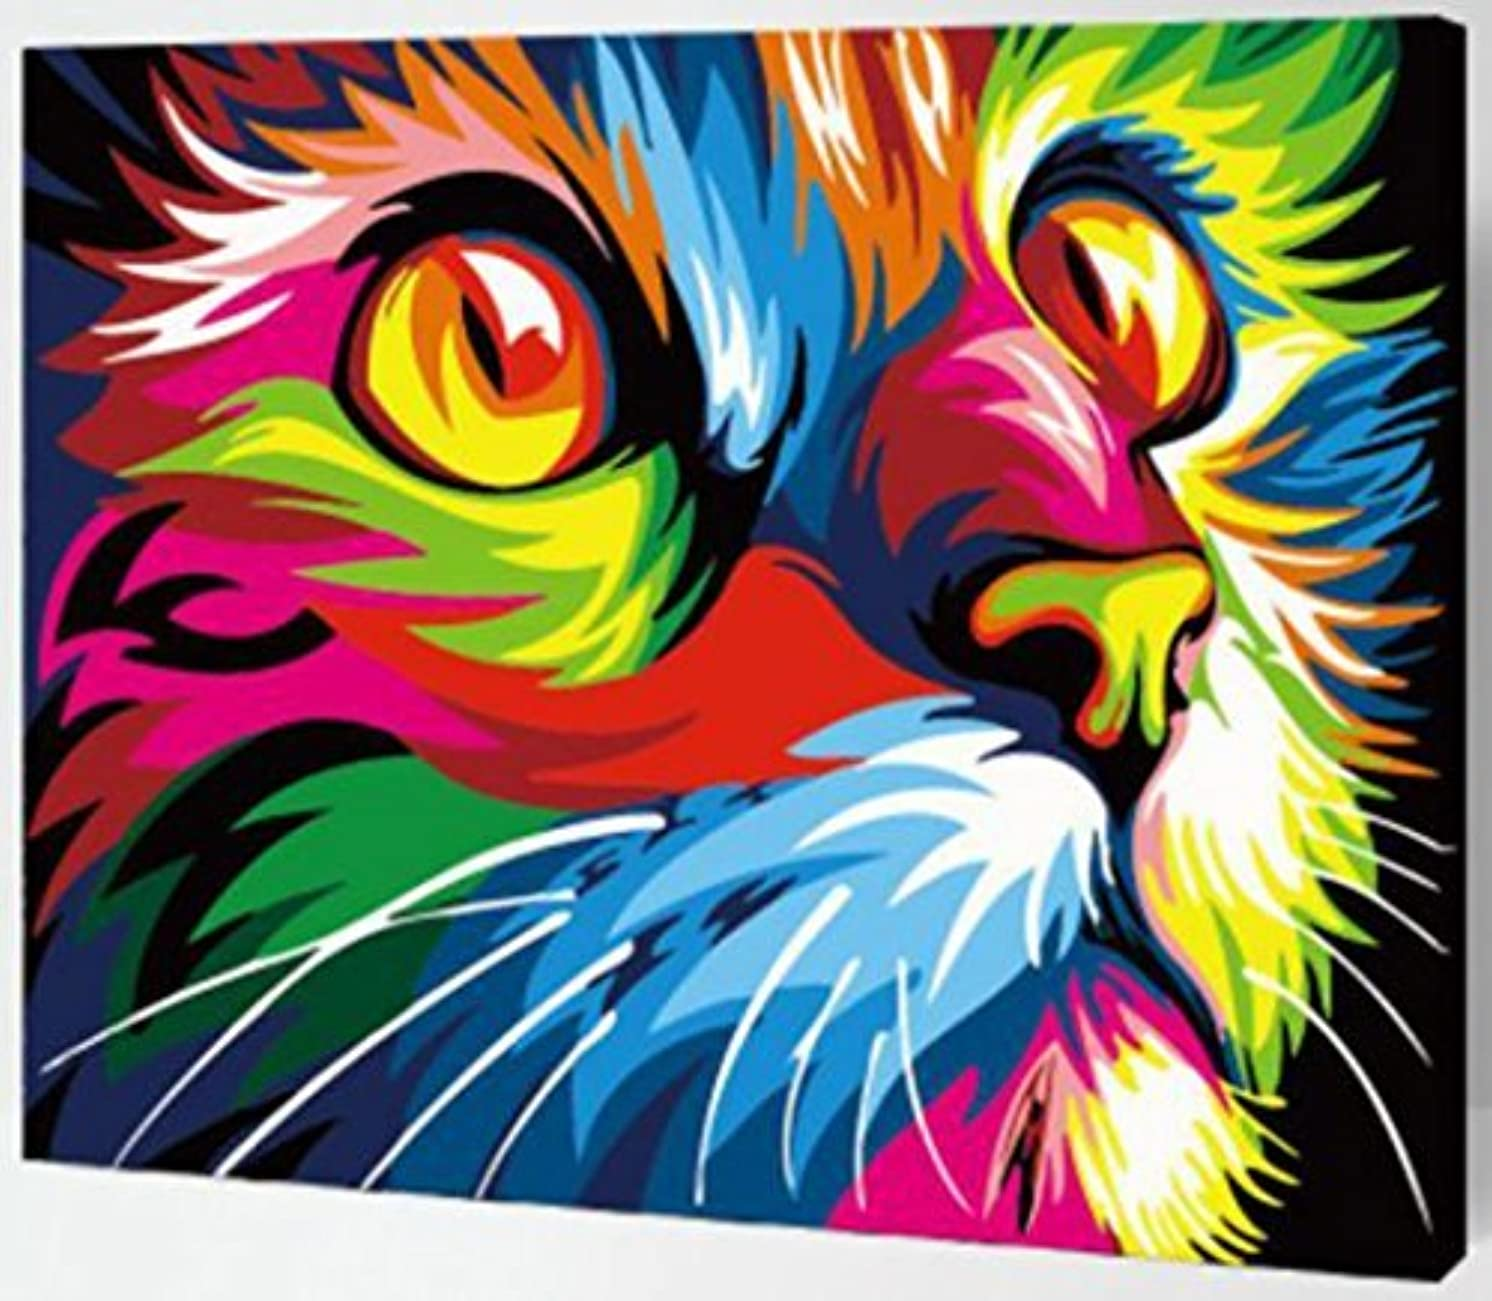 MailingArt Wooden Framed Paint by Number No Mixing/No Blending Canvas DIY Painting - Color Animals (Cat)